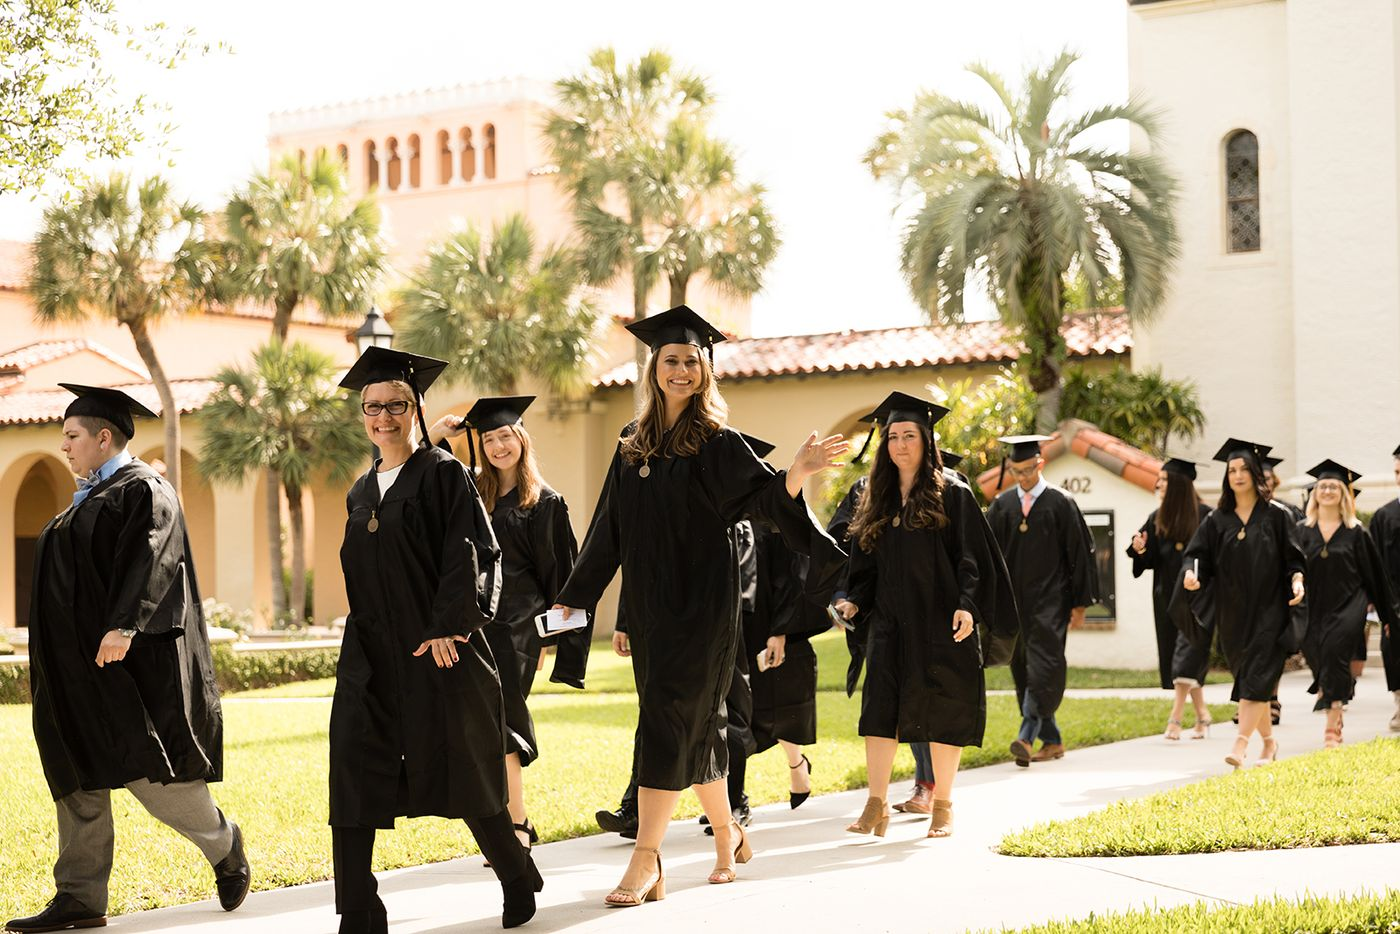 Hamilton Holt students in their commencement attire.